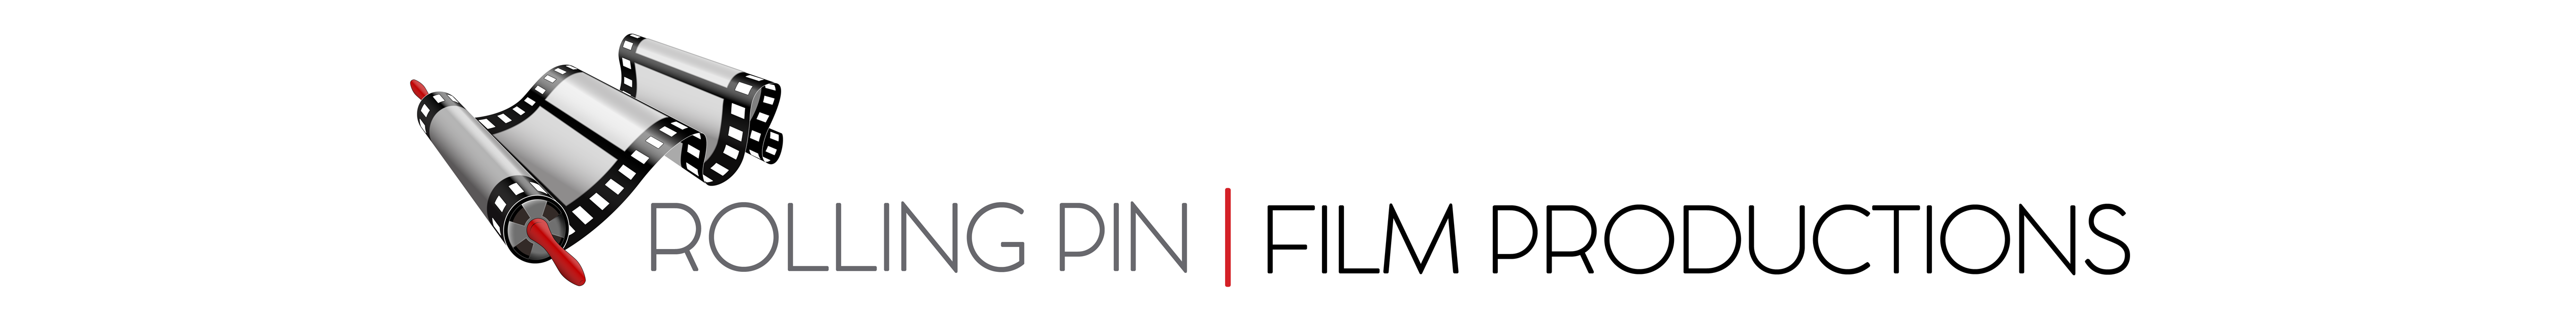 Rolling Pin Film Productions